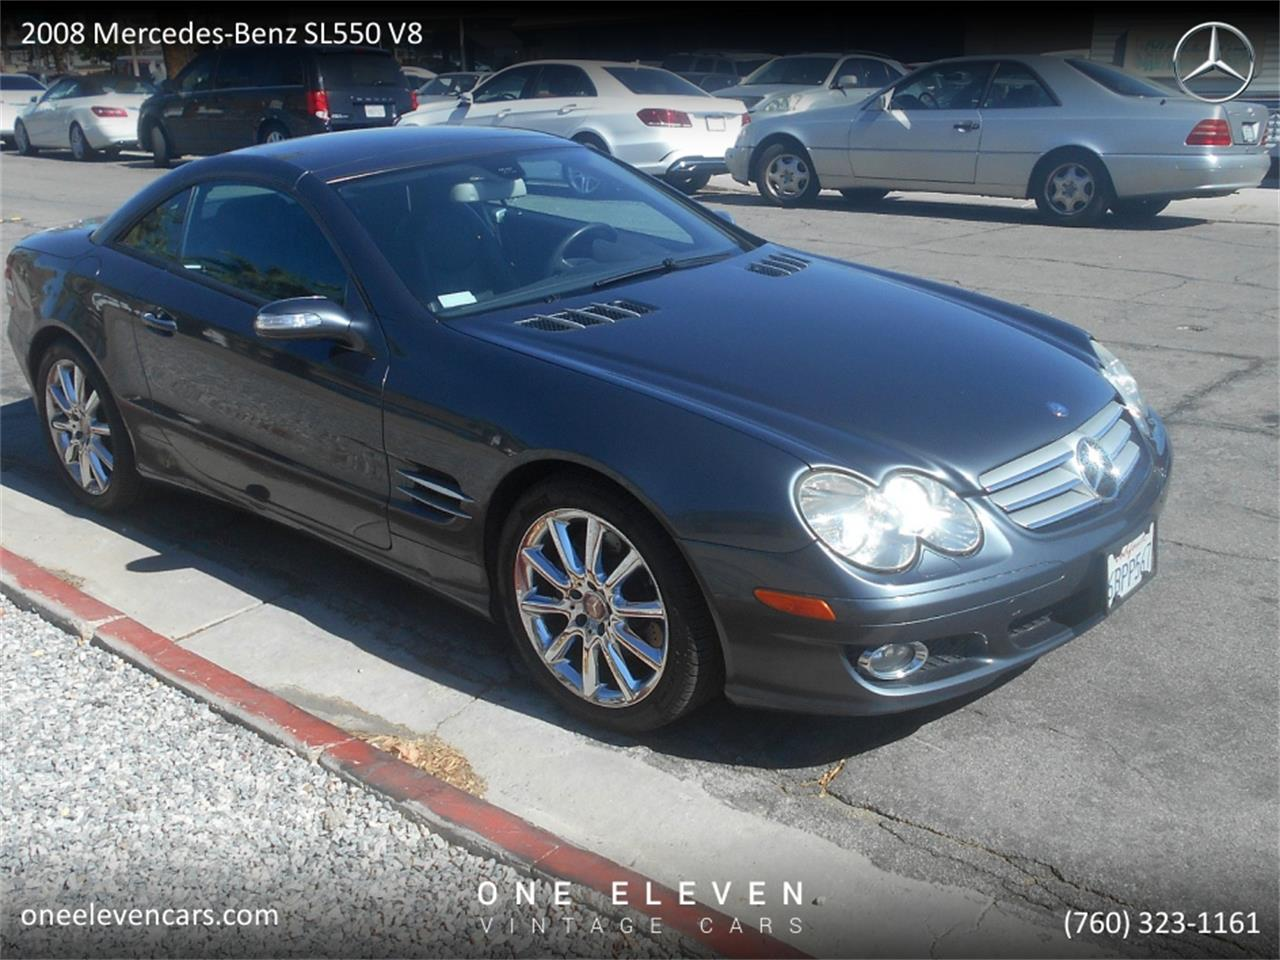 for sale 2008 mercedes-benz sl-class in palm springs, california cars - palm springs, ca at geebo